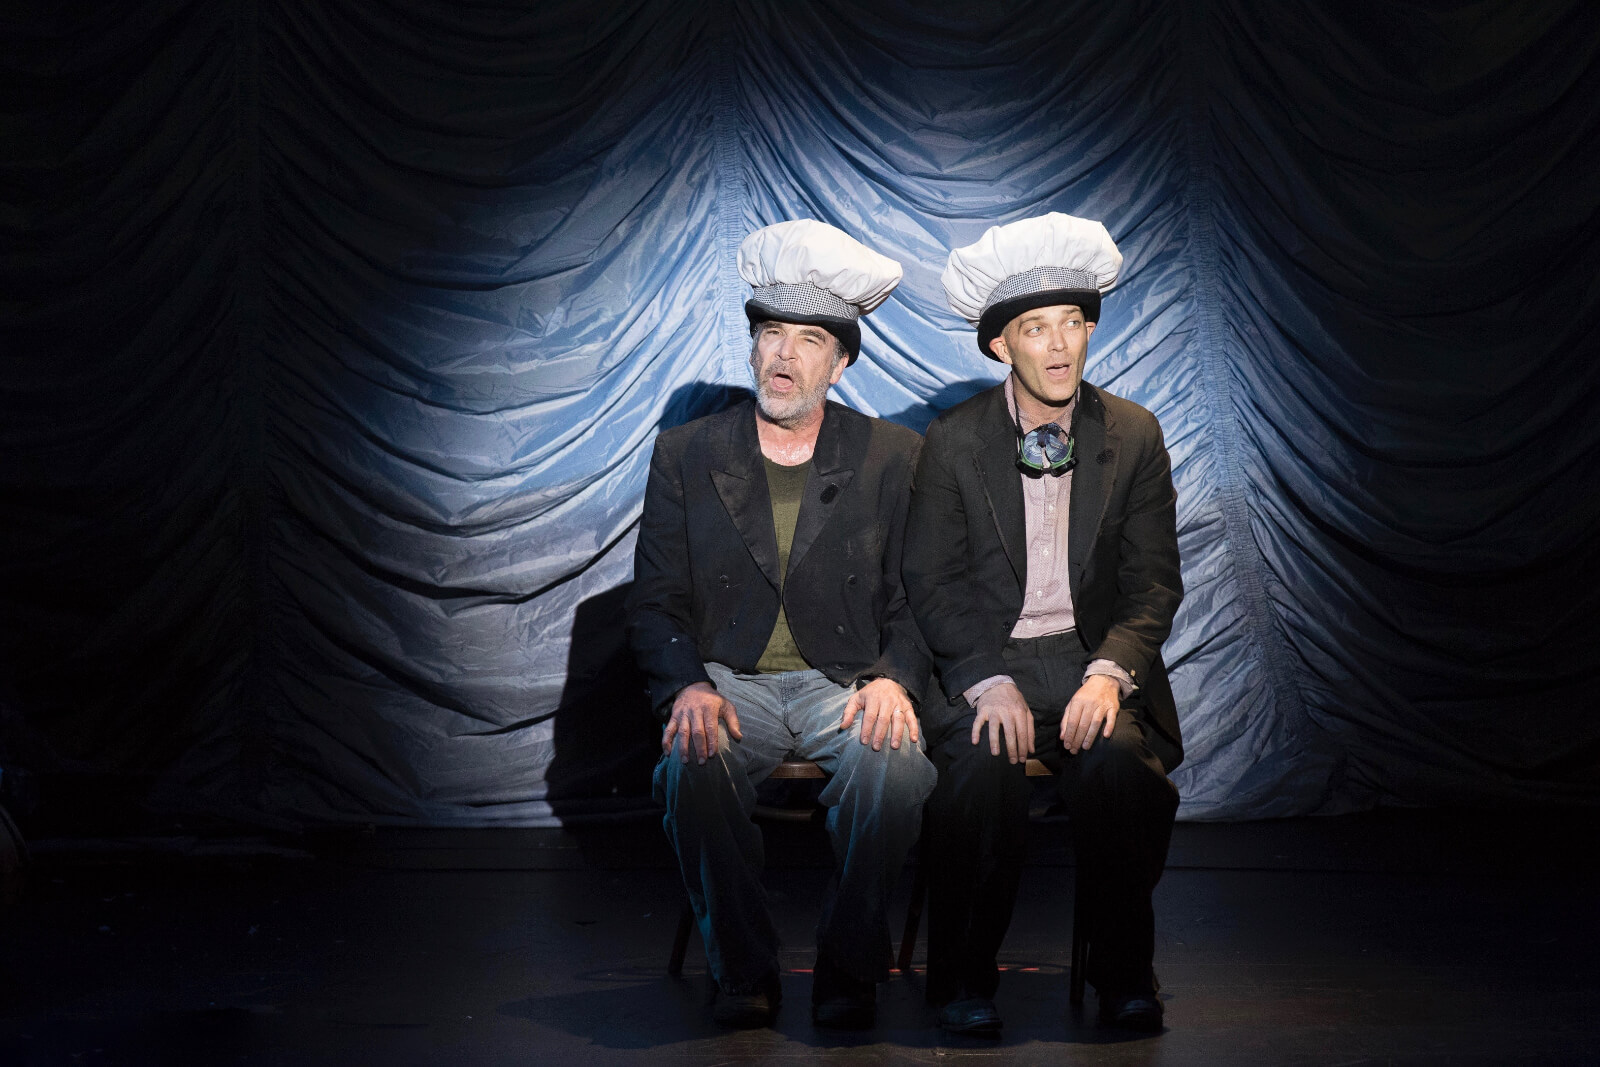 """Mandy Patinkin and Taylor Mac singing """"Making Pies"""". They are wearing bakers hats on top of their derby hats."""